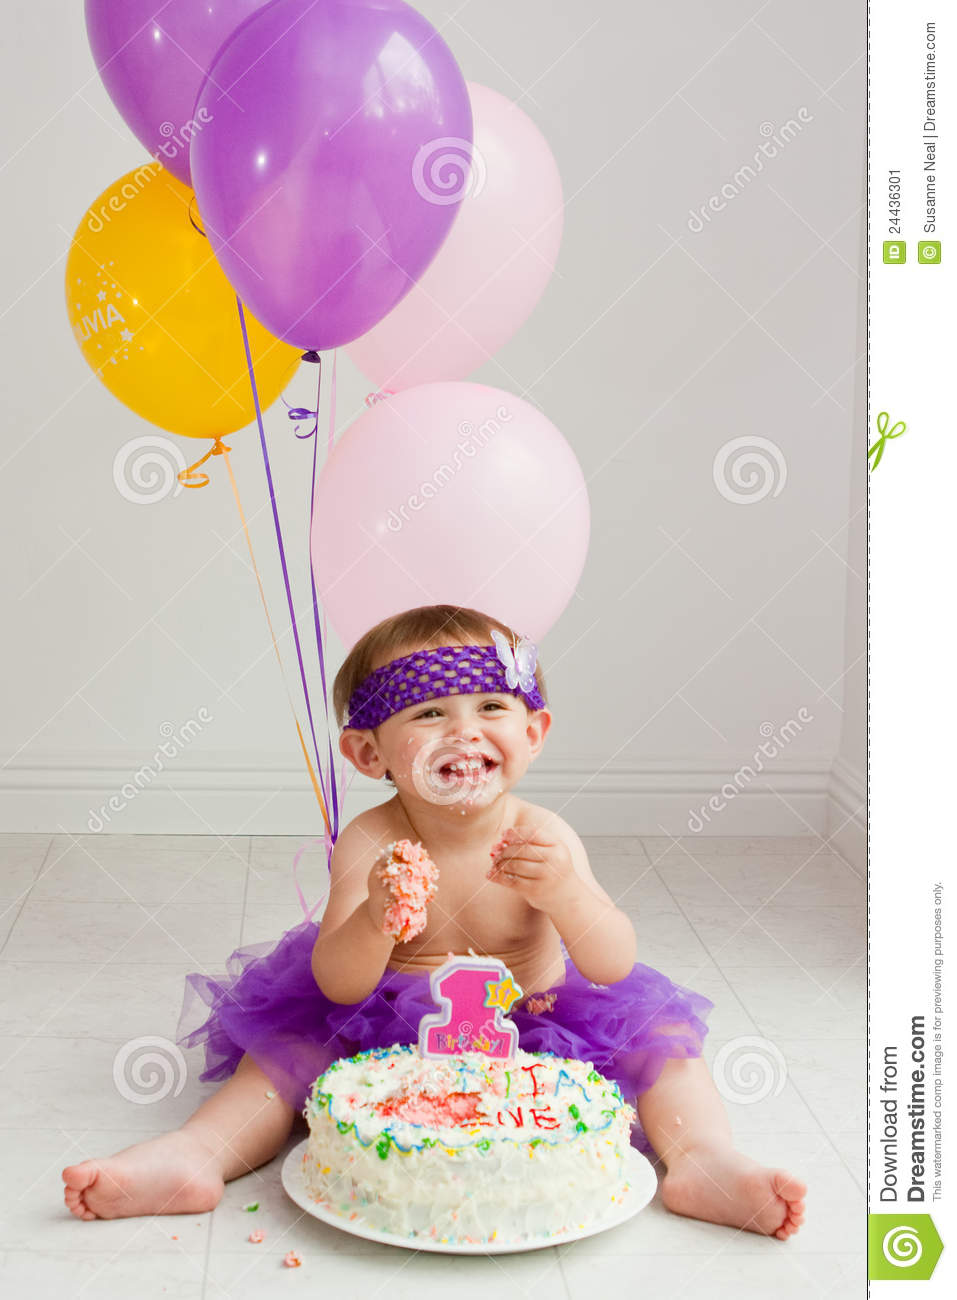 one year old birthday photo shoot ; one-year-old-birthday-girl-cake-24436301